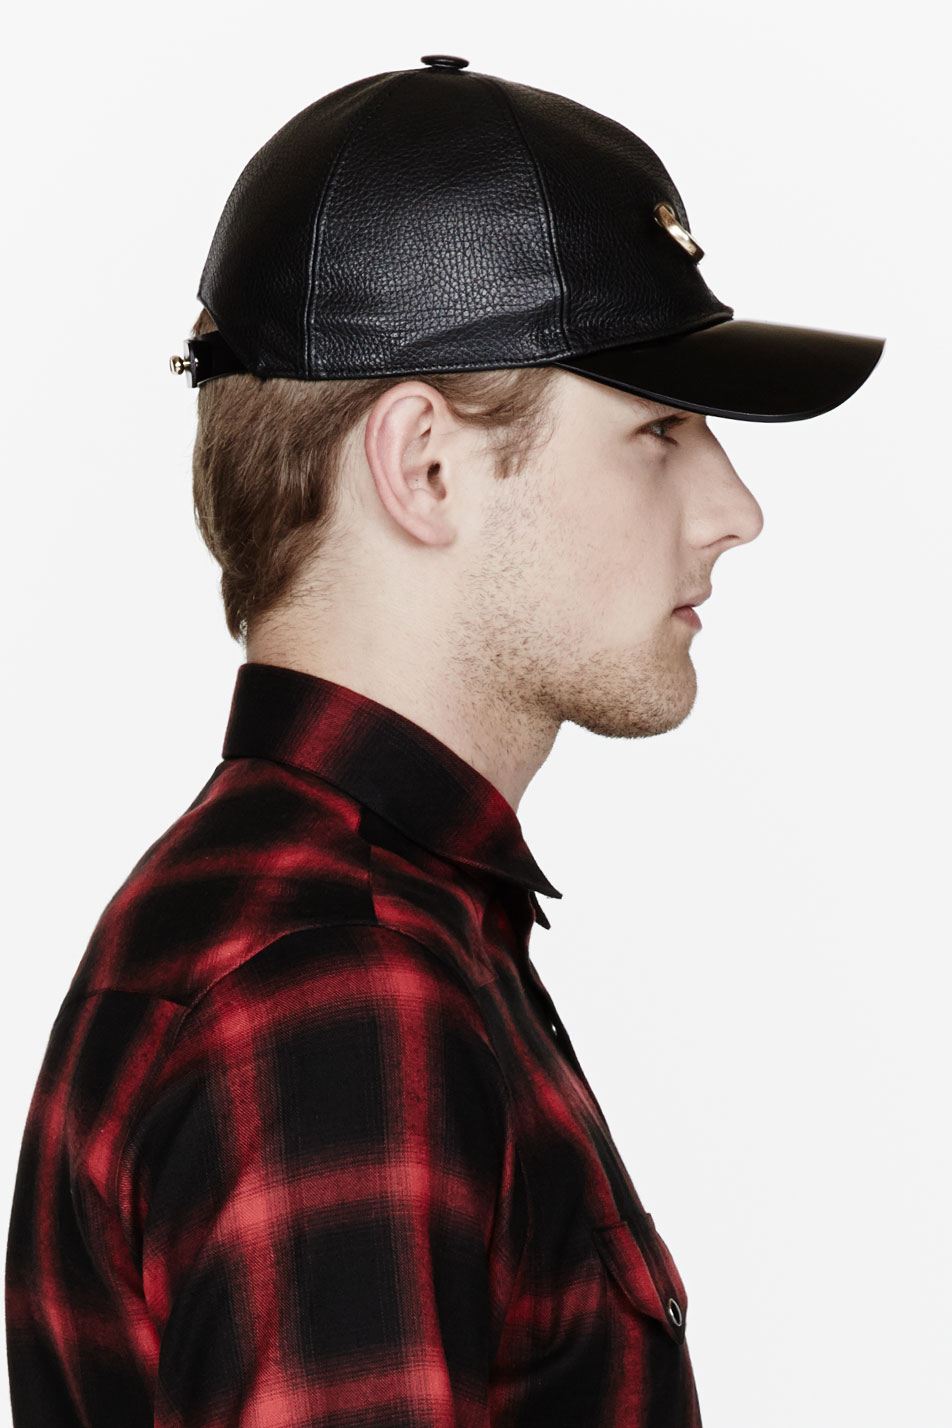 Lyst - Marc Jacobs Black Textured Leather Gold Pin Cap in Black for Men e8bab9dc012